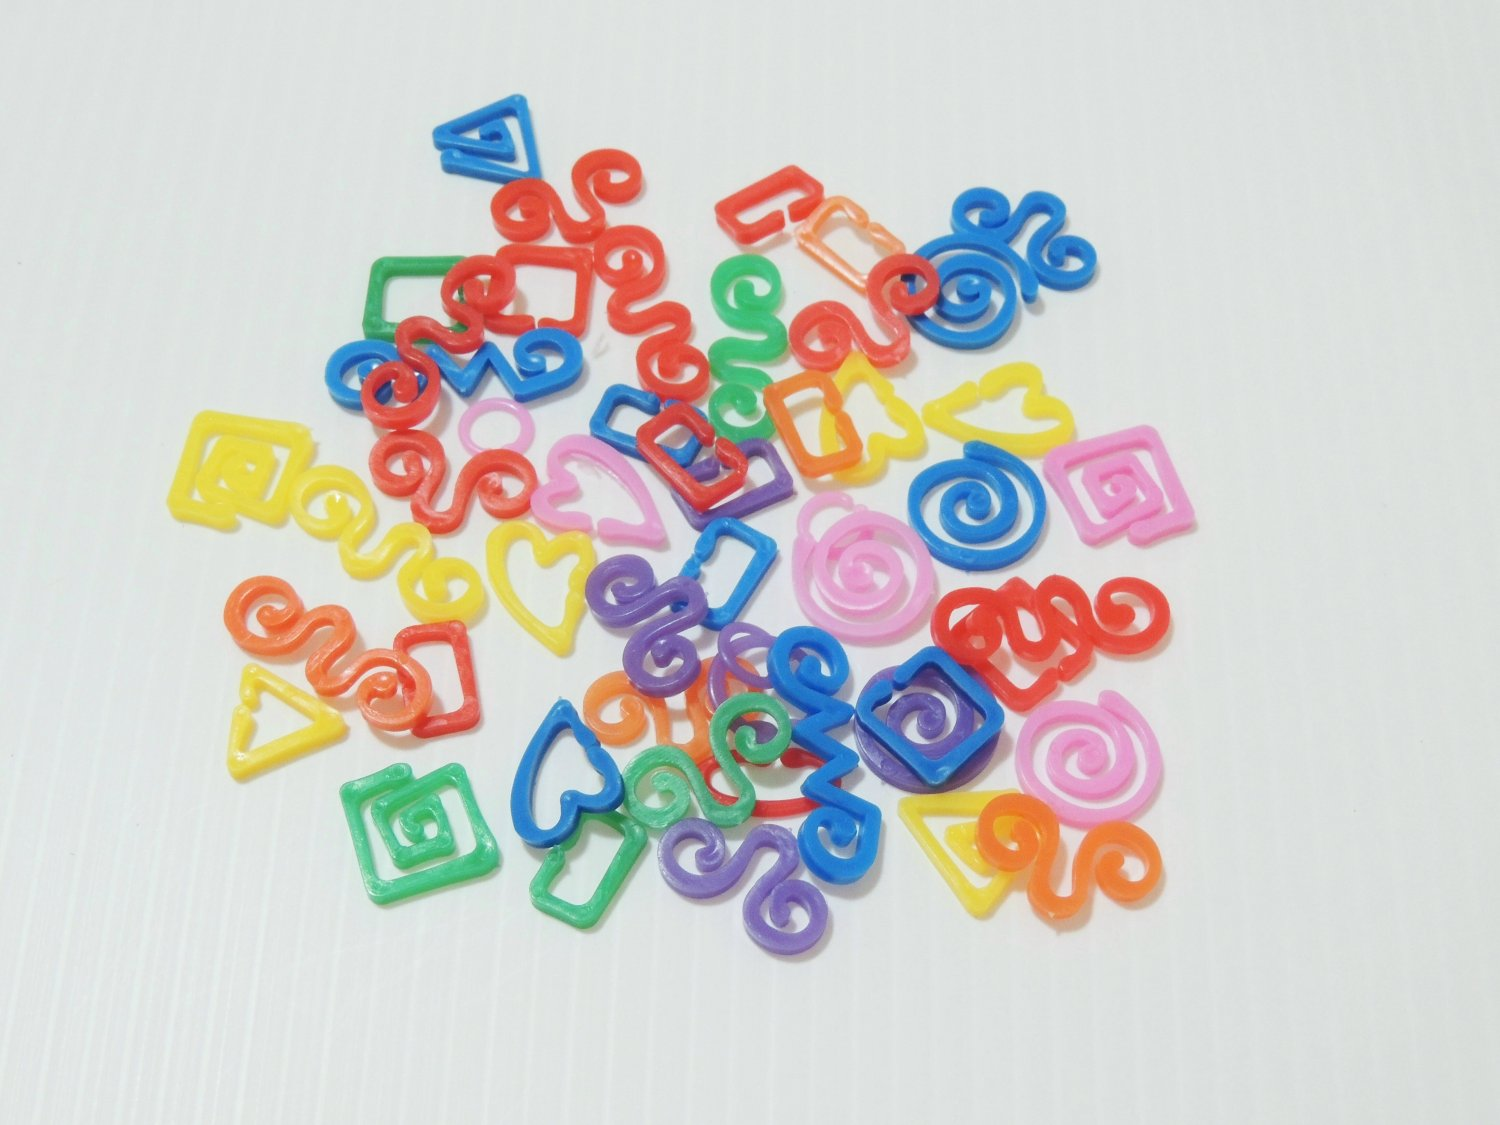 50 Crazy links Small bird toy parts parrots cages perches